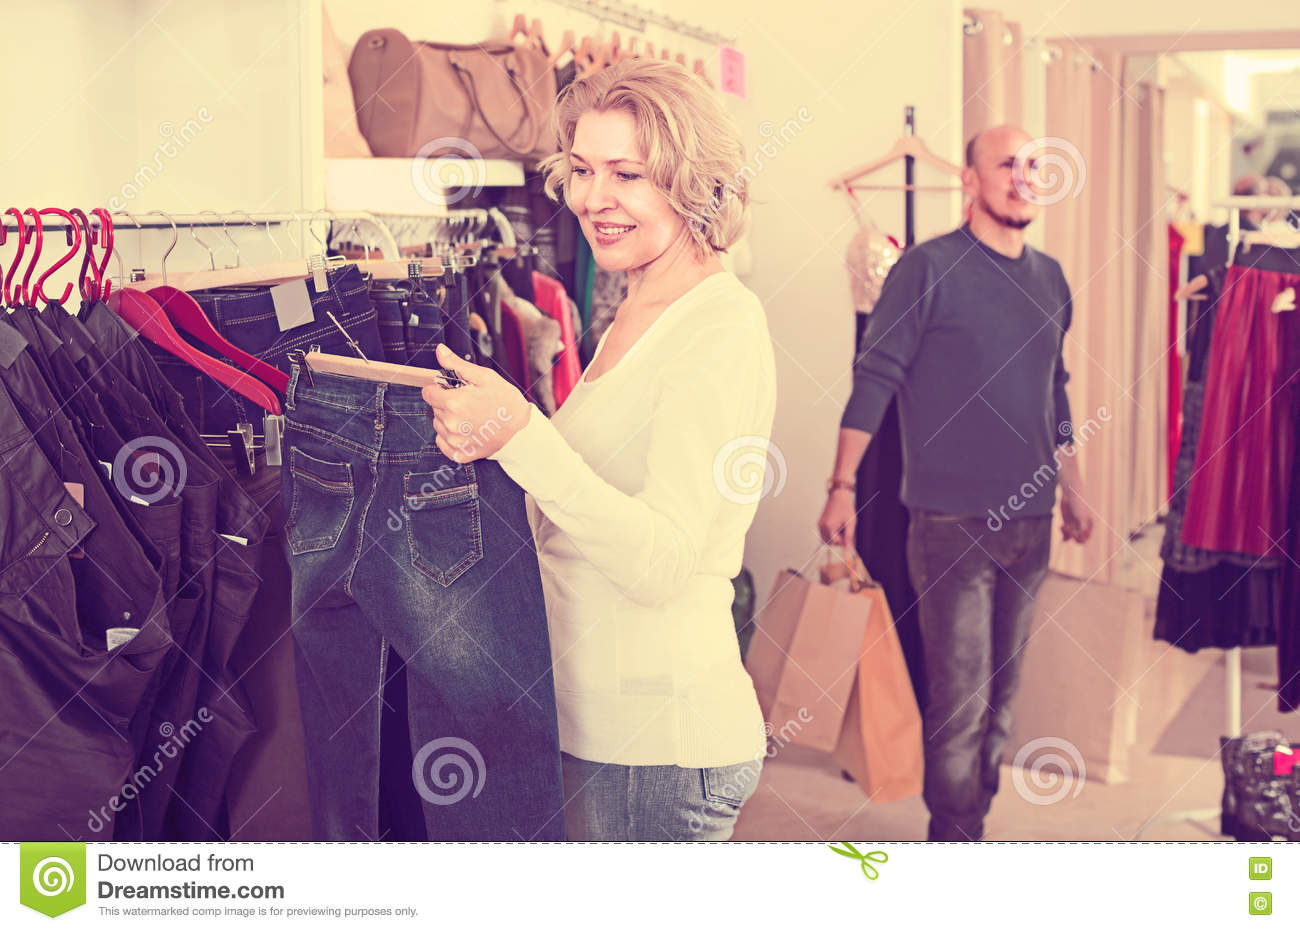 Woman buying jeans stock image  Image of european, choice - 81117083